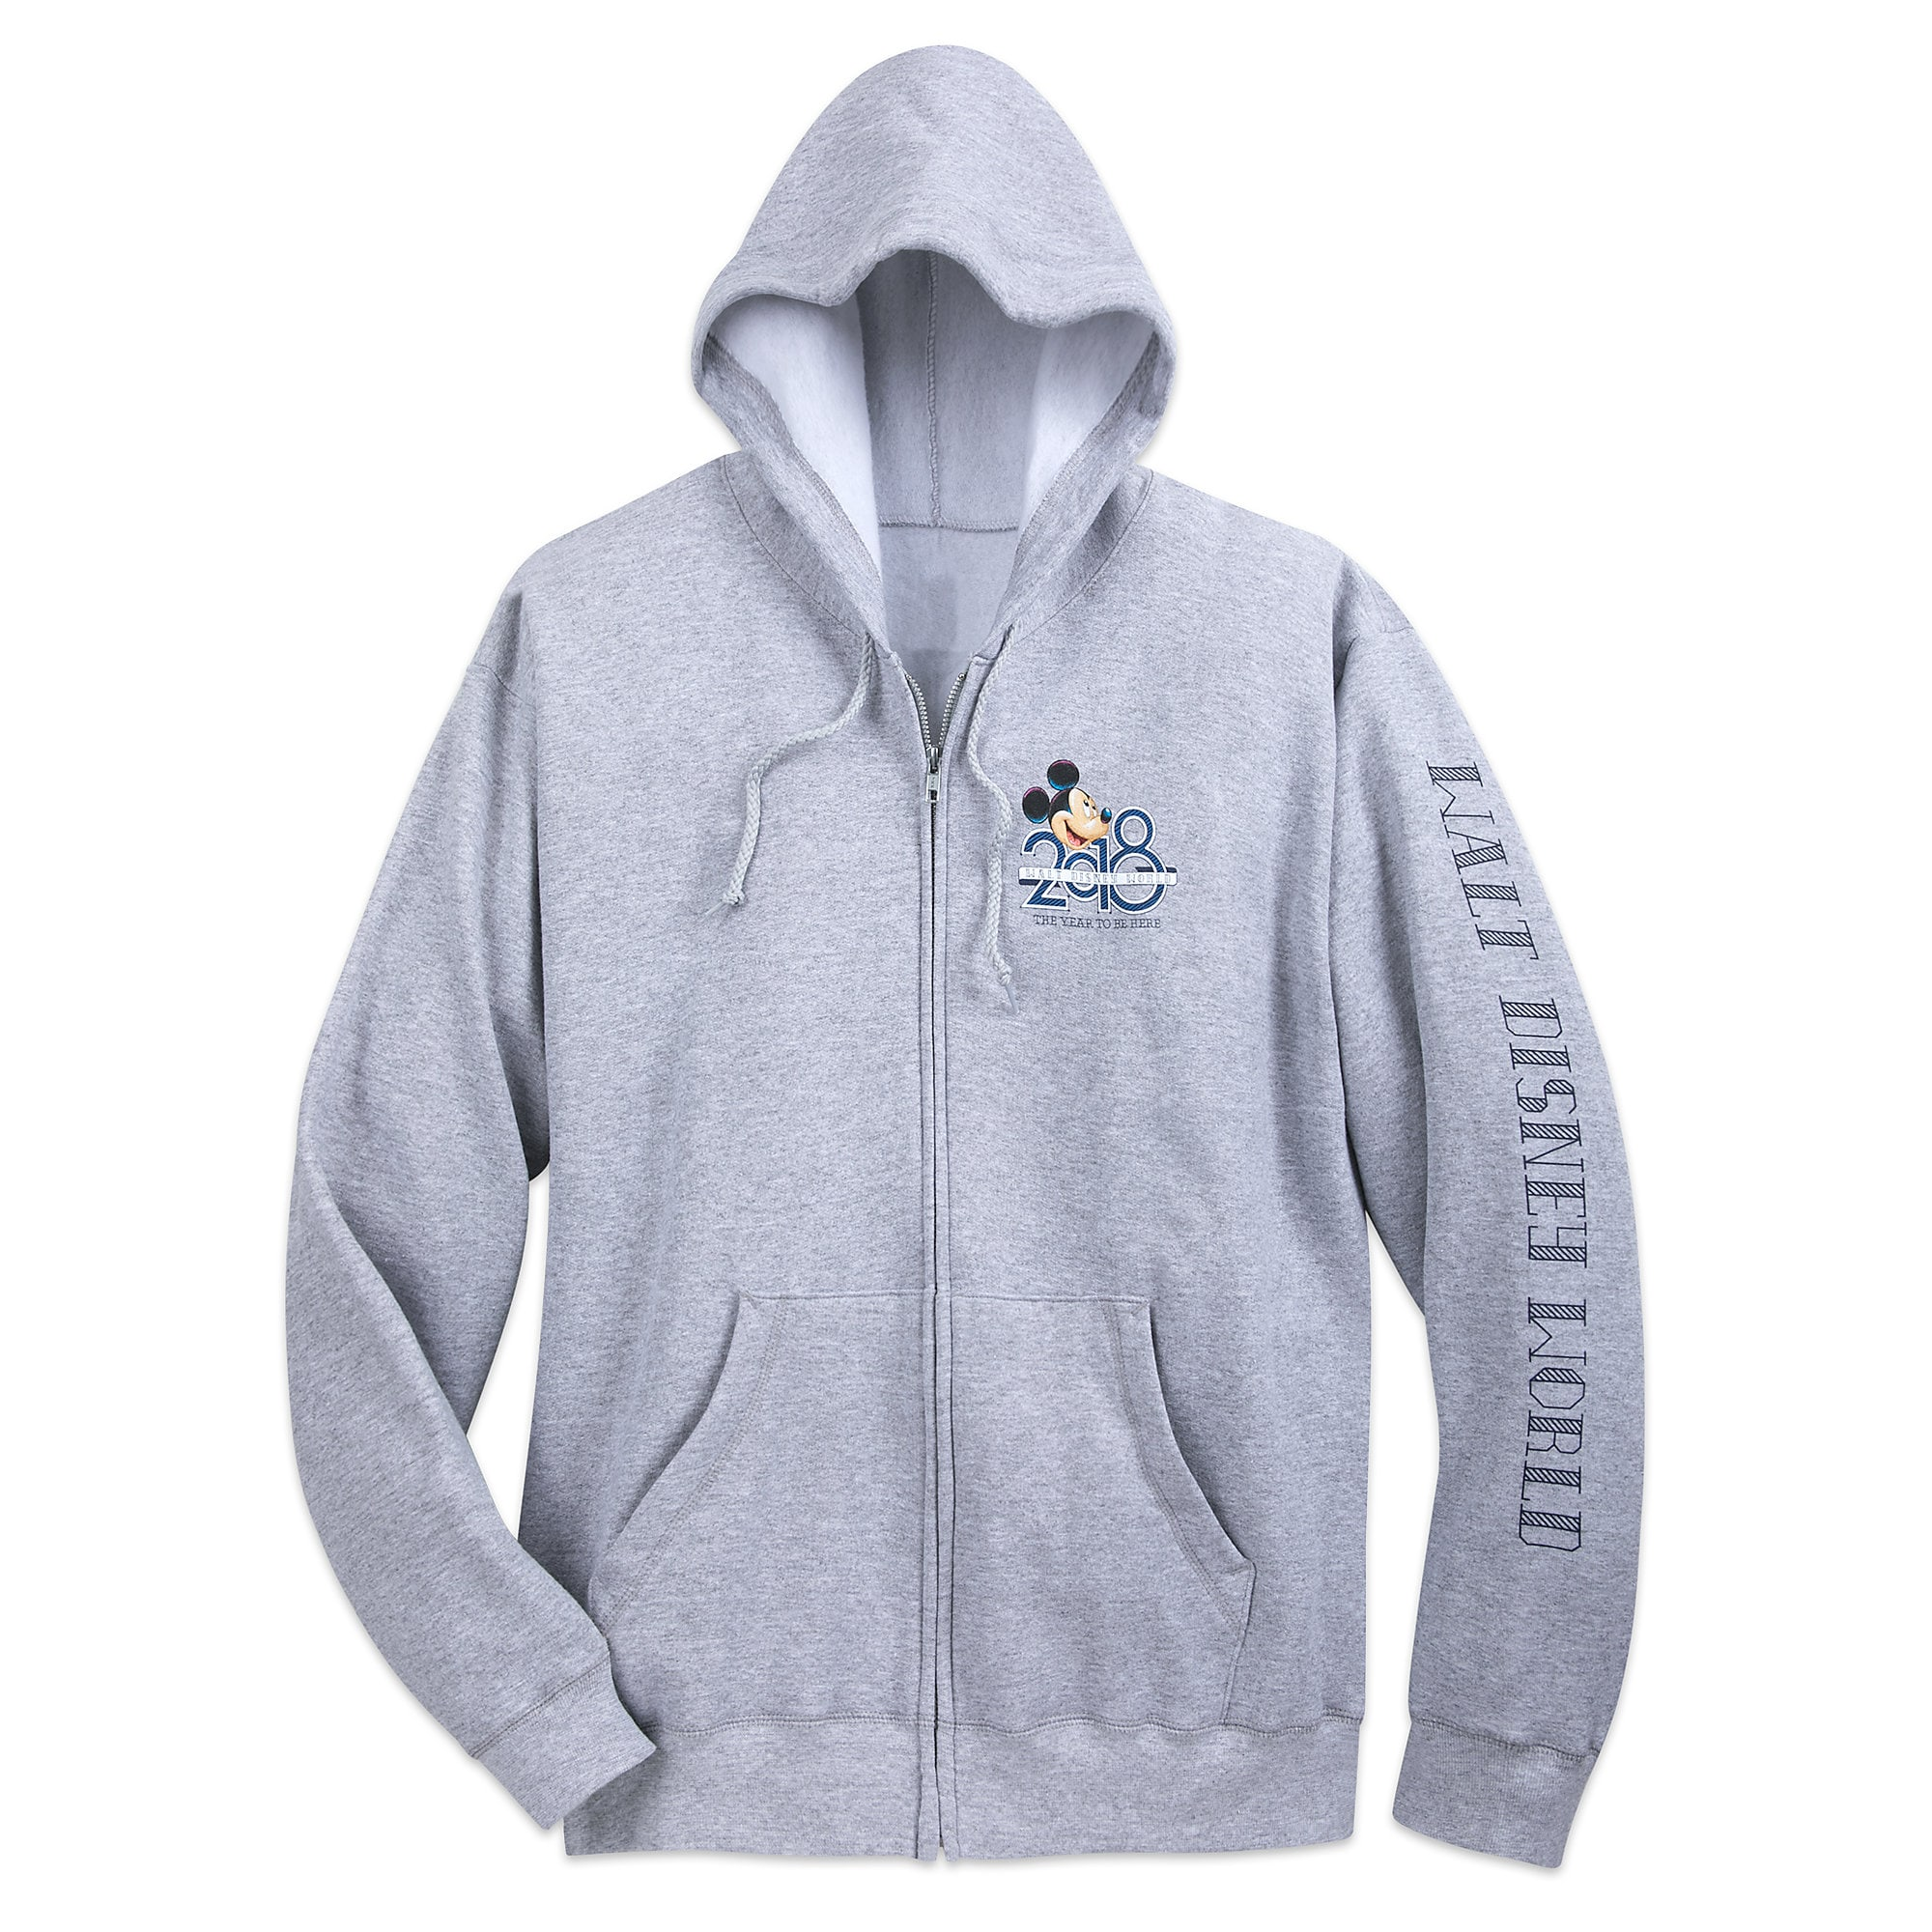 Mickey Mouse and Friends Hoodie for Adults  Walt Disney World 2018  shopDisney